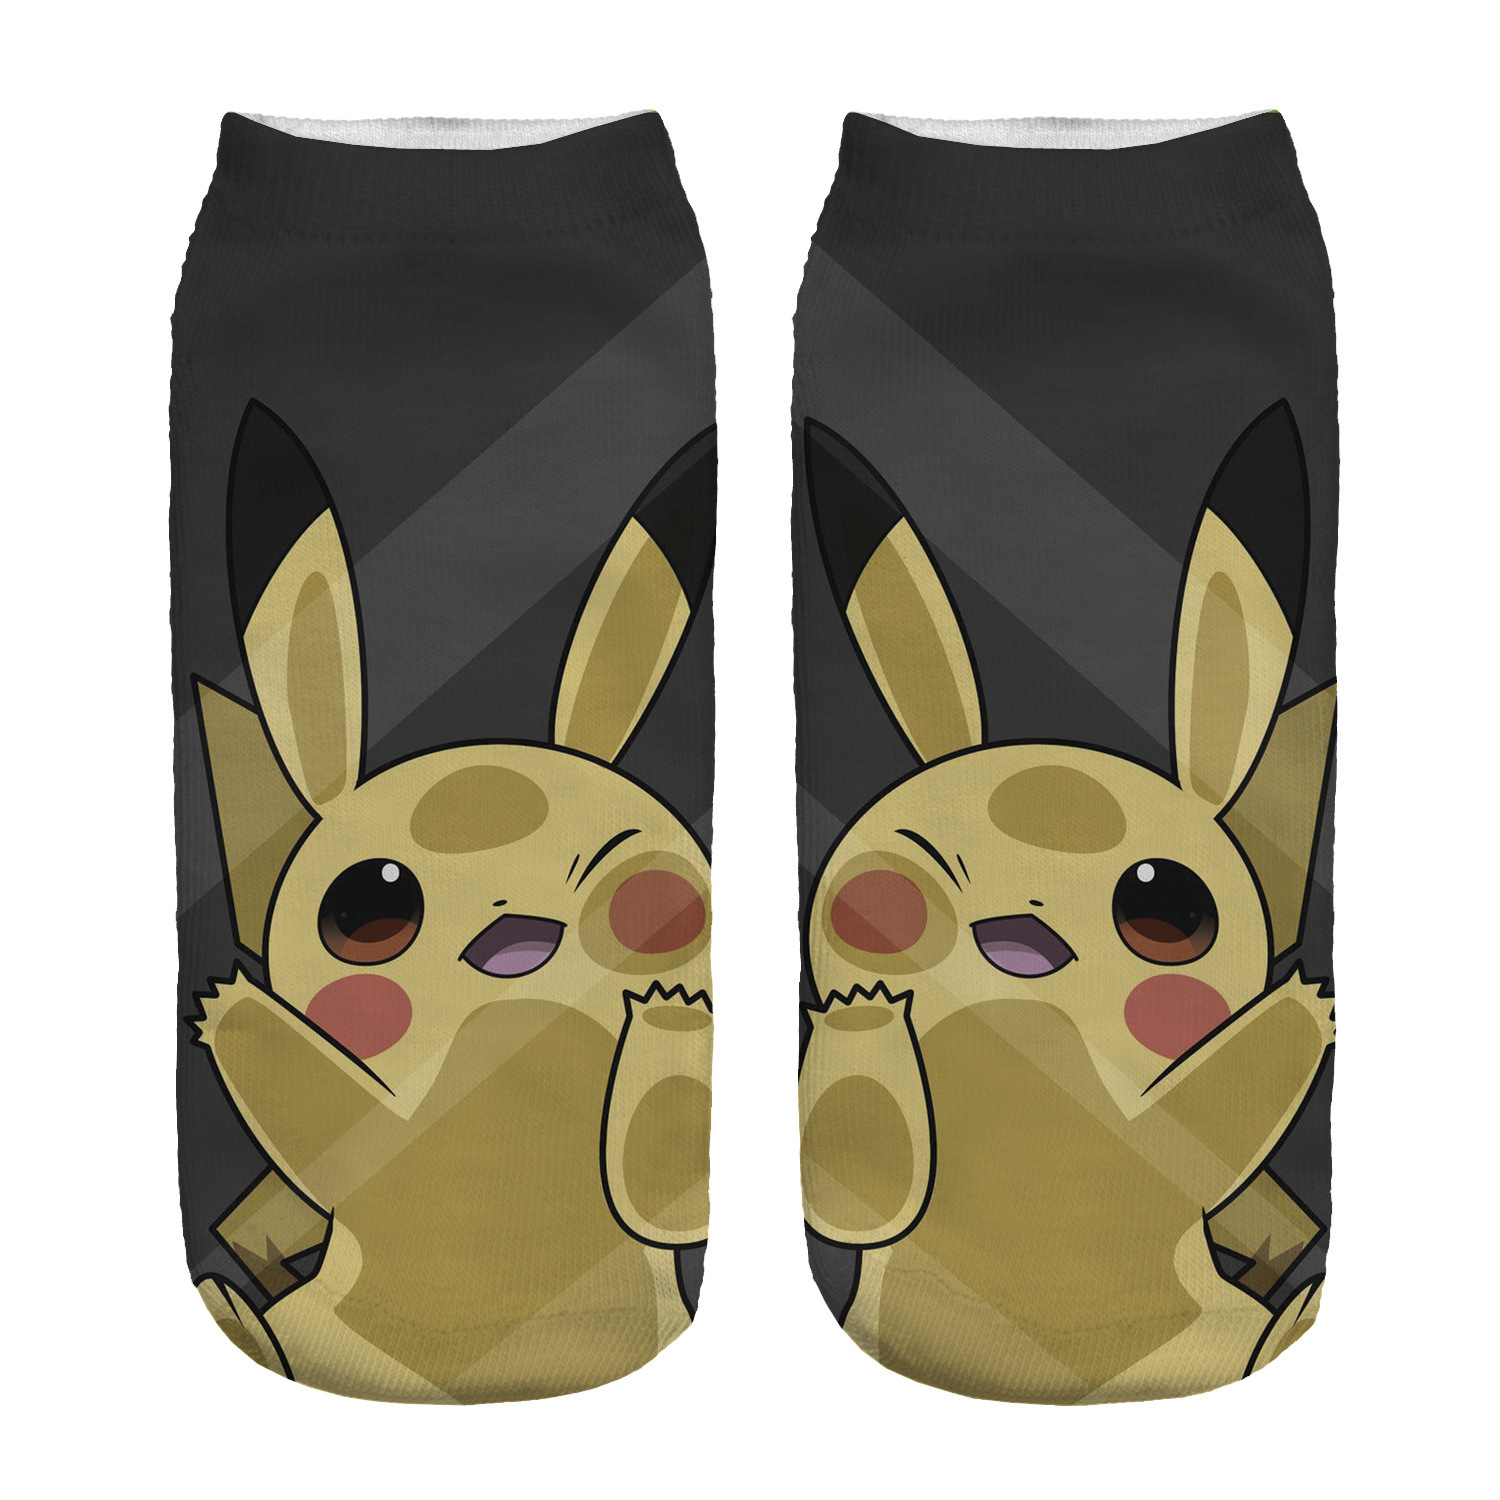 Kawaii Pokemon Black Pikachu Girl Cotton Socks Funny Woman Cute Socks Japanese Cartoon Printed Boy Short Socks